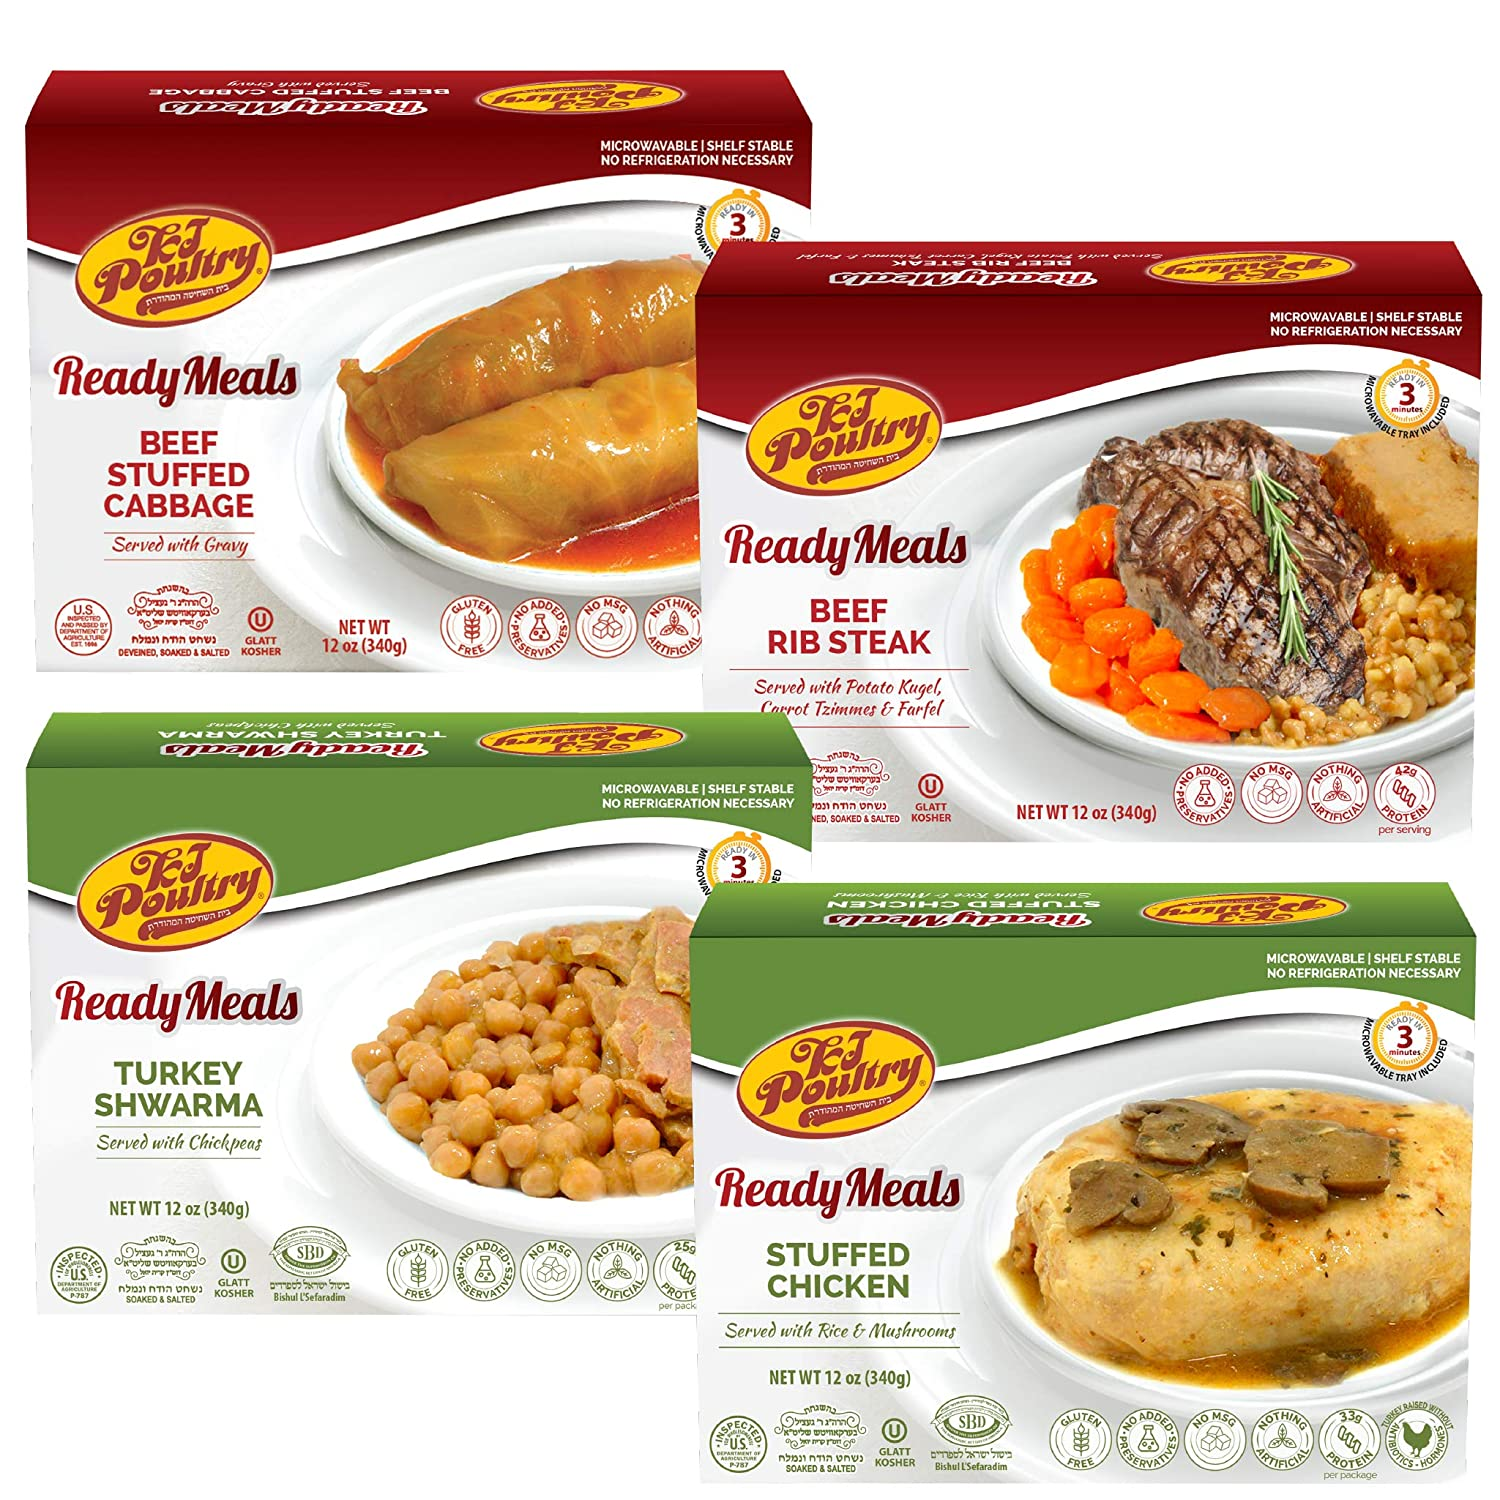 Kosher Mre Meat Meals Ready to Eat, Variety of Beef Rib Steak, Stuffed Cabbage Rolls, Chicken Breast, Turkey Shwarma (4 Pack Bundle) - Prepared Entree Fully Cooked, Shelf Stable Microwave Dinner